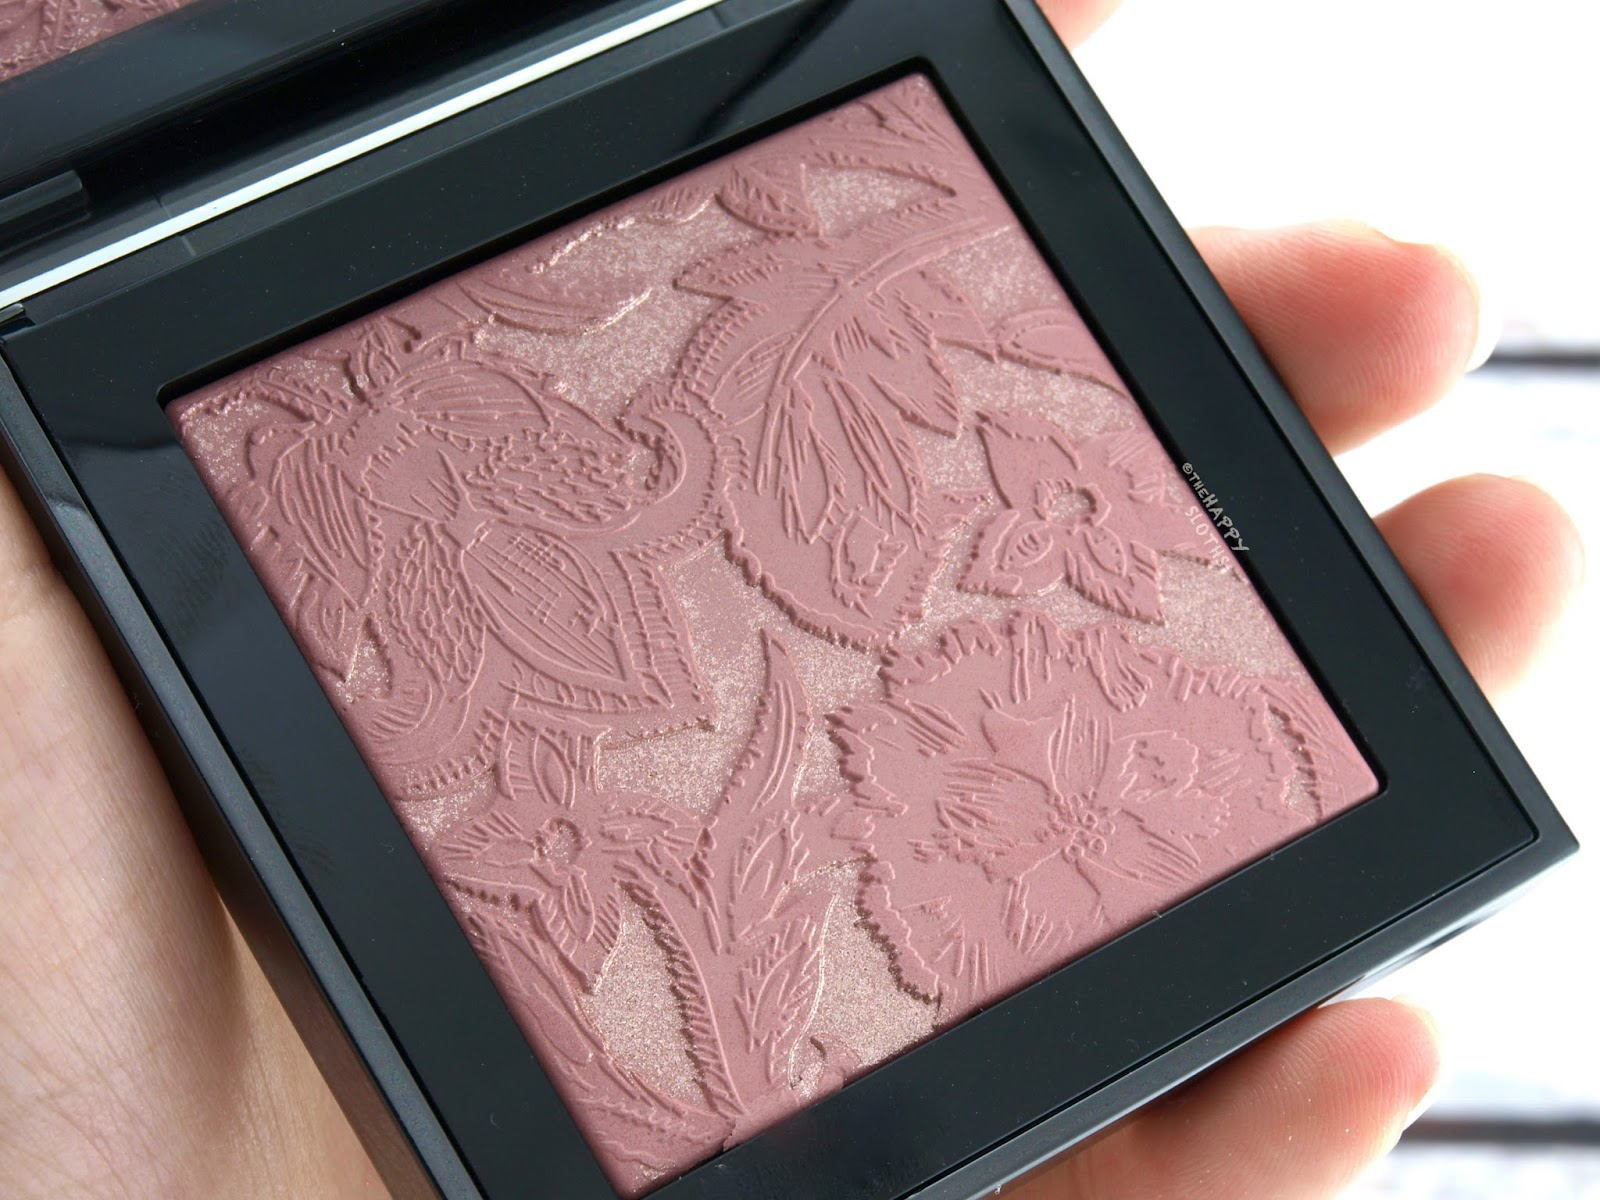 Burberry Fall 2017 Blush Makeup Collection | My Burberry Blush Palette: Review and Swatches